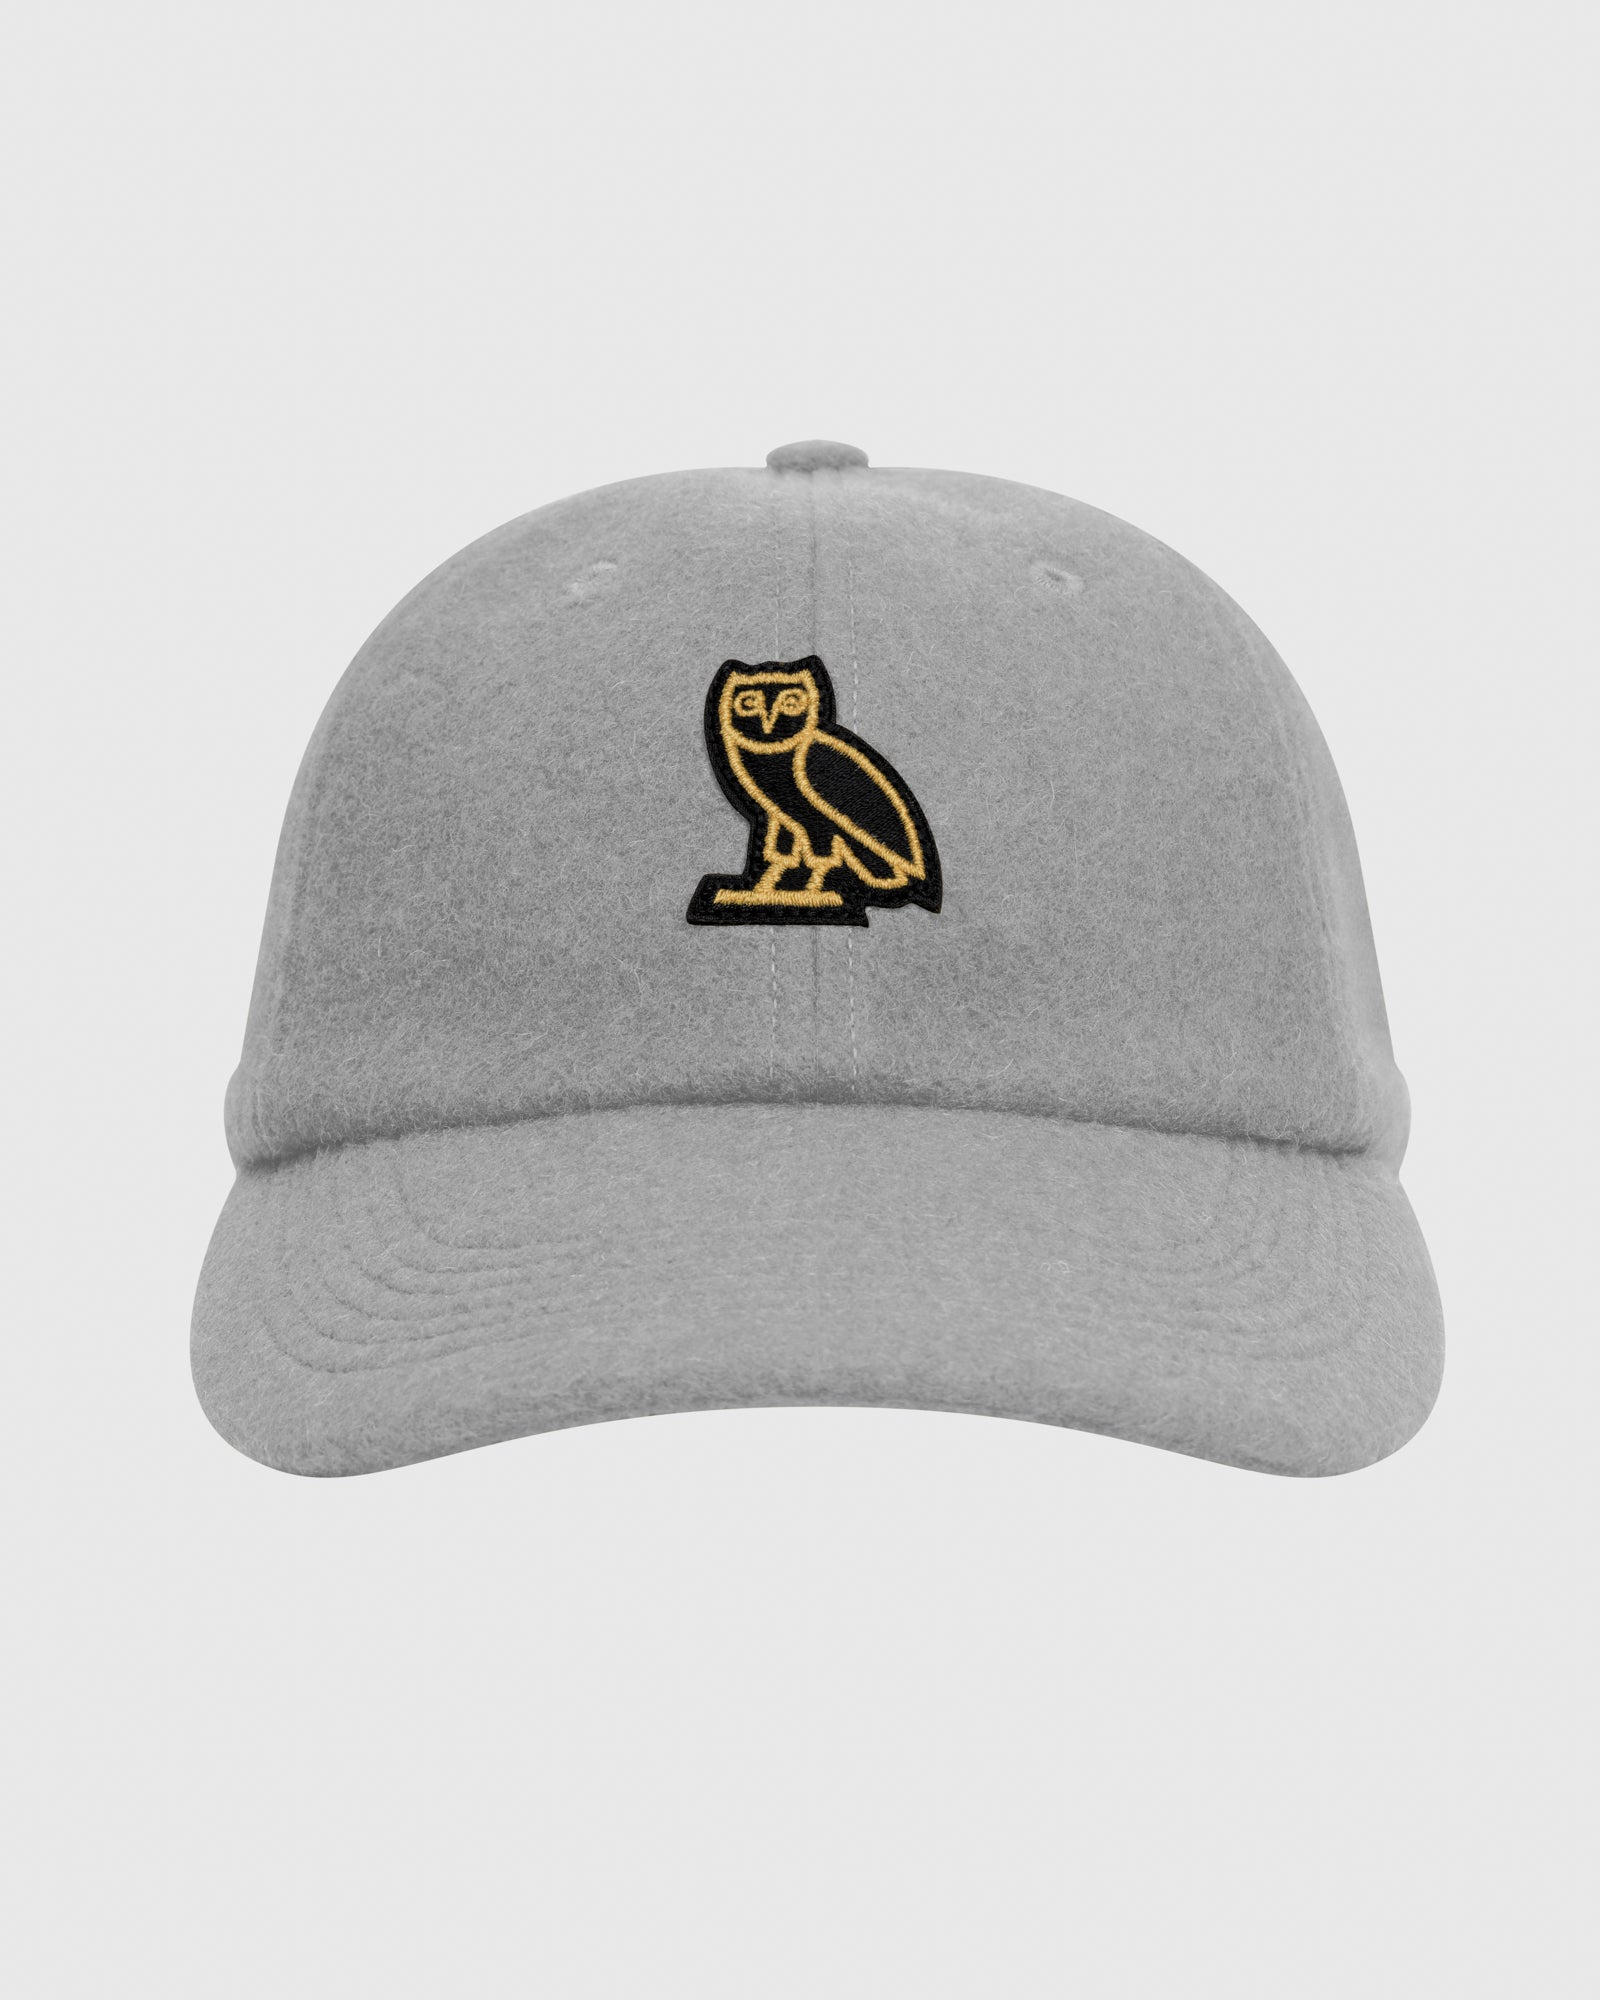 MELTON OWL SPORTCAP - HEATHER GREY